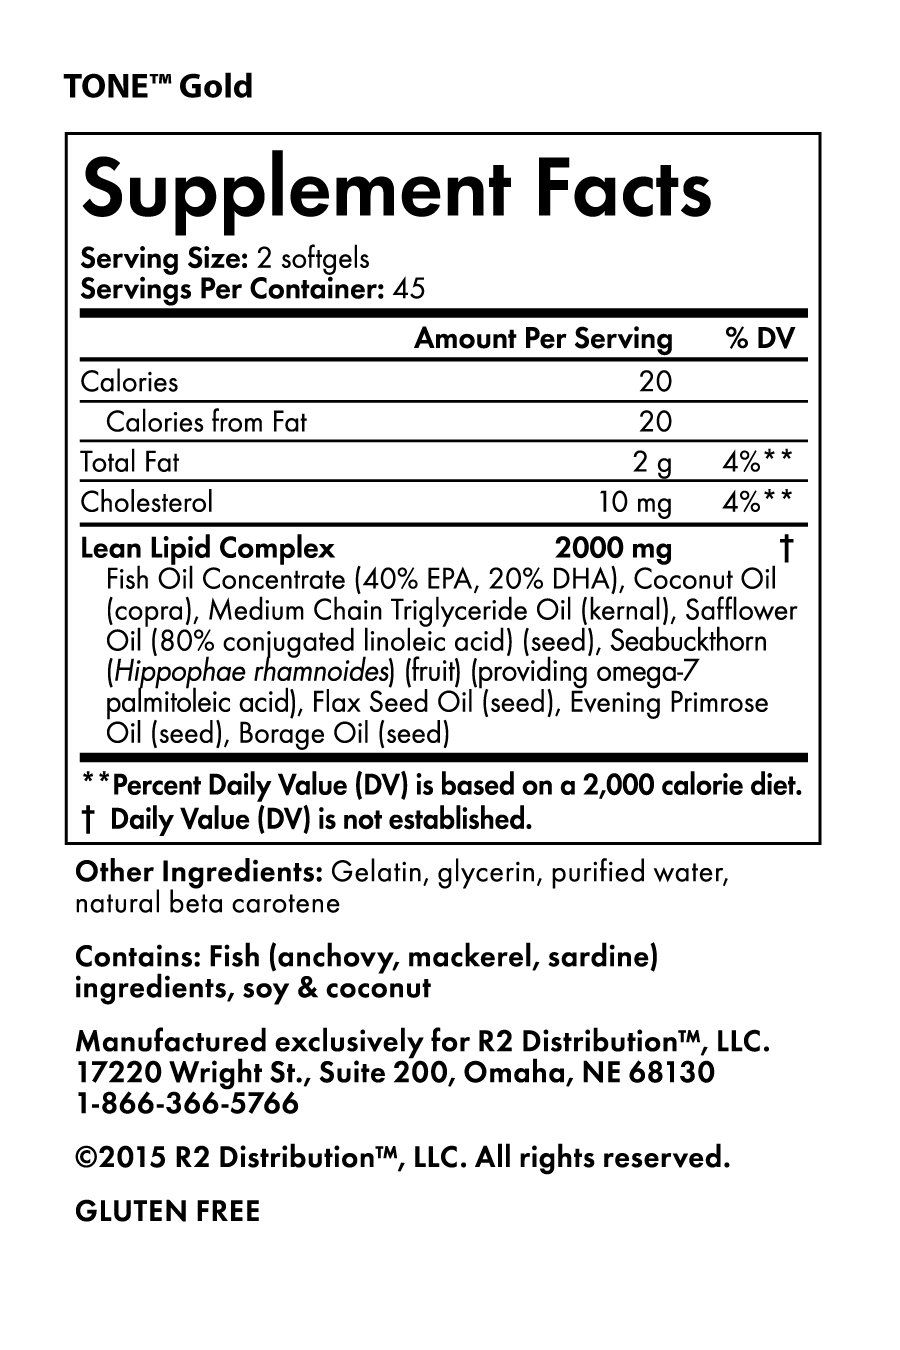 Tone Gold -Nutrition Facts